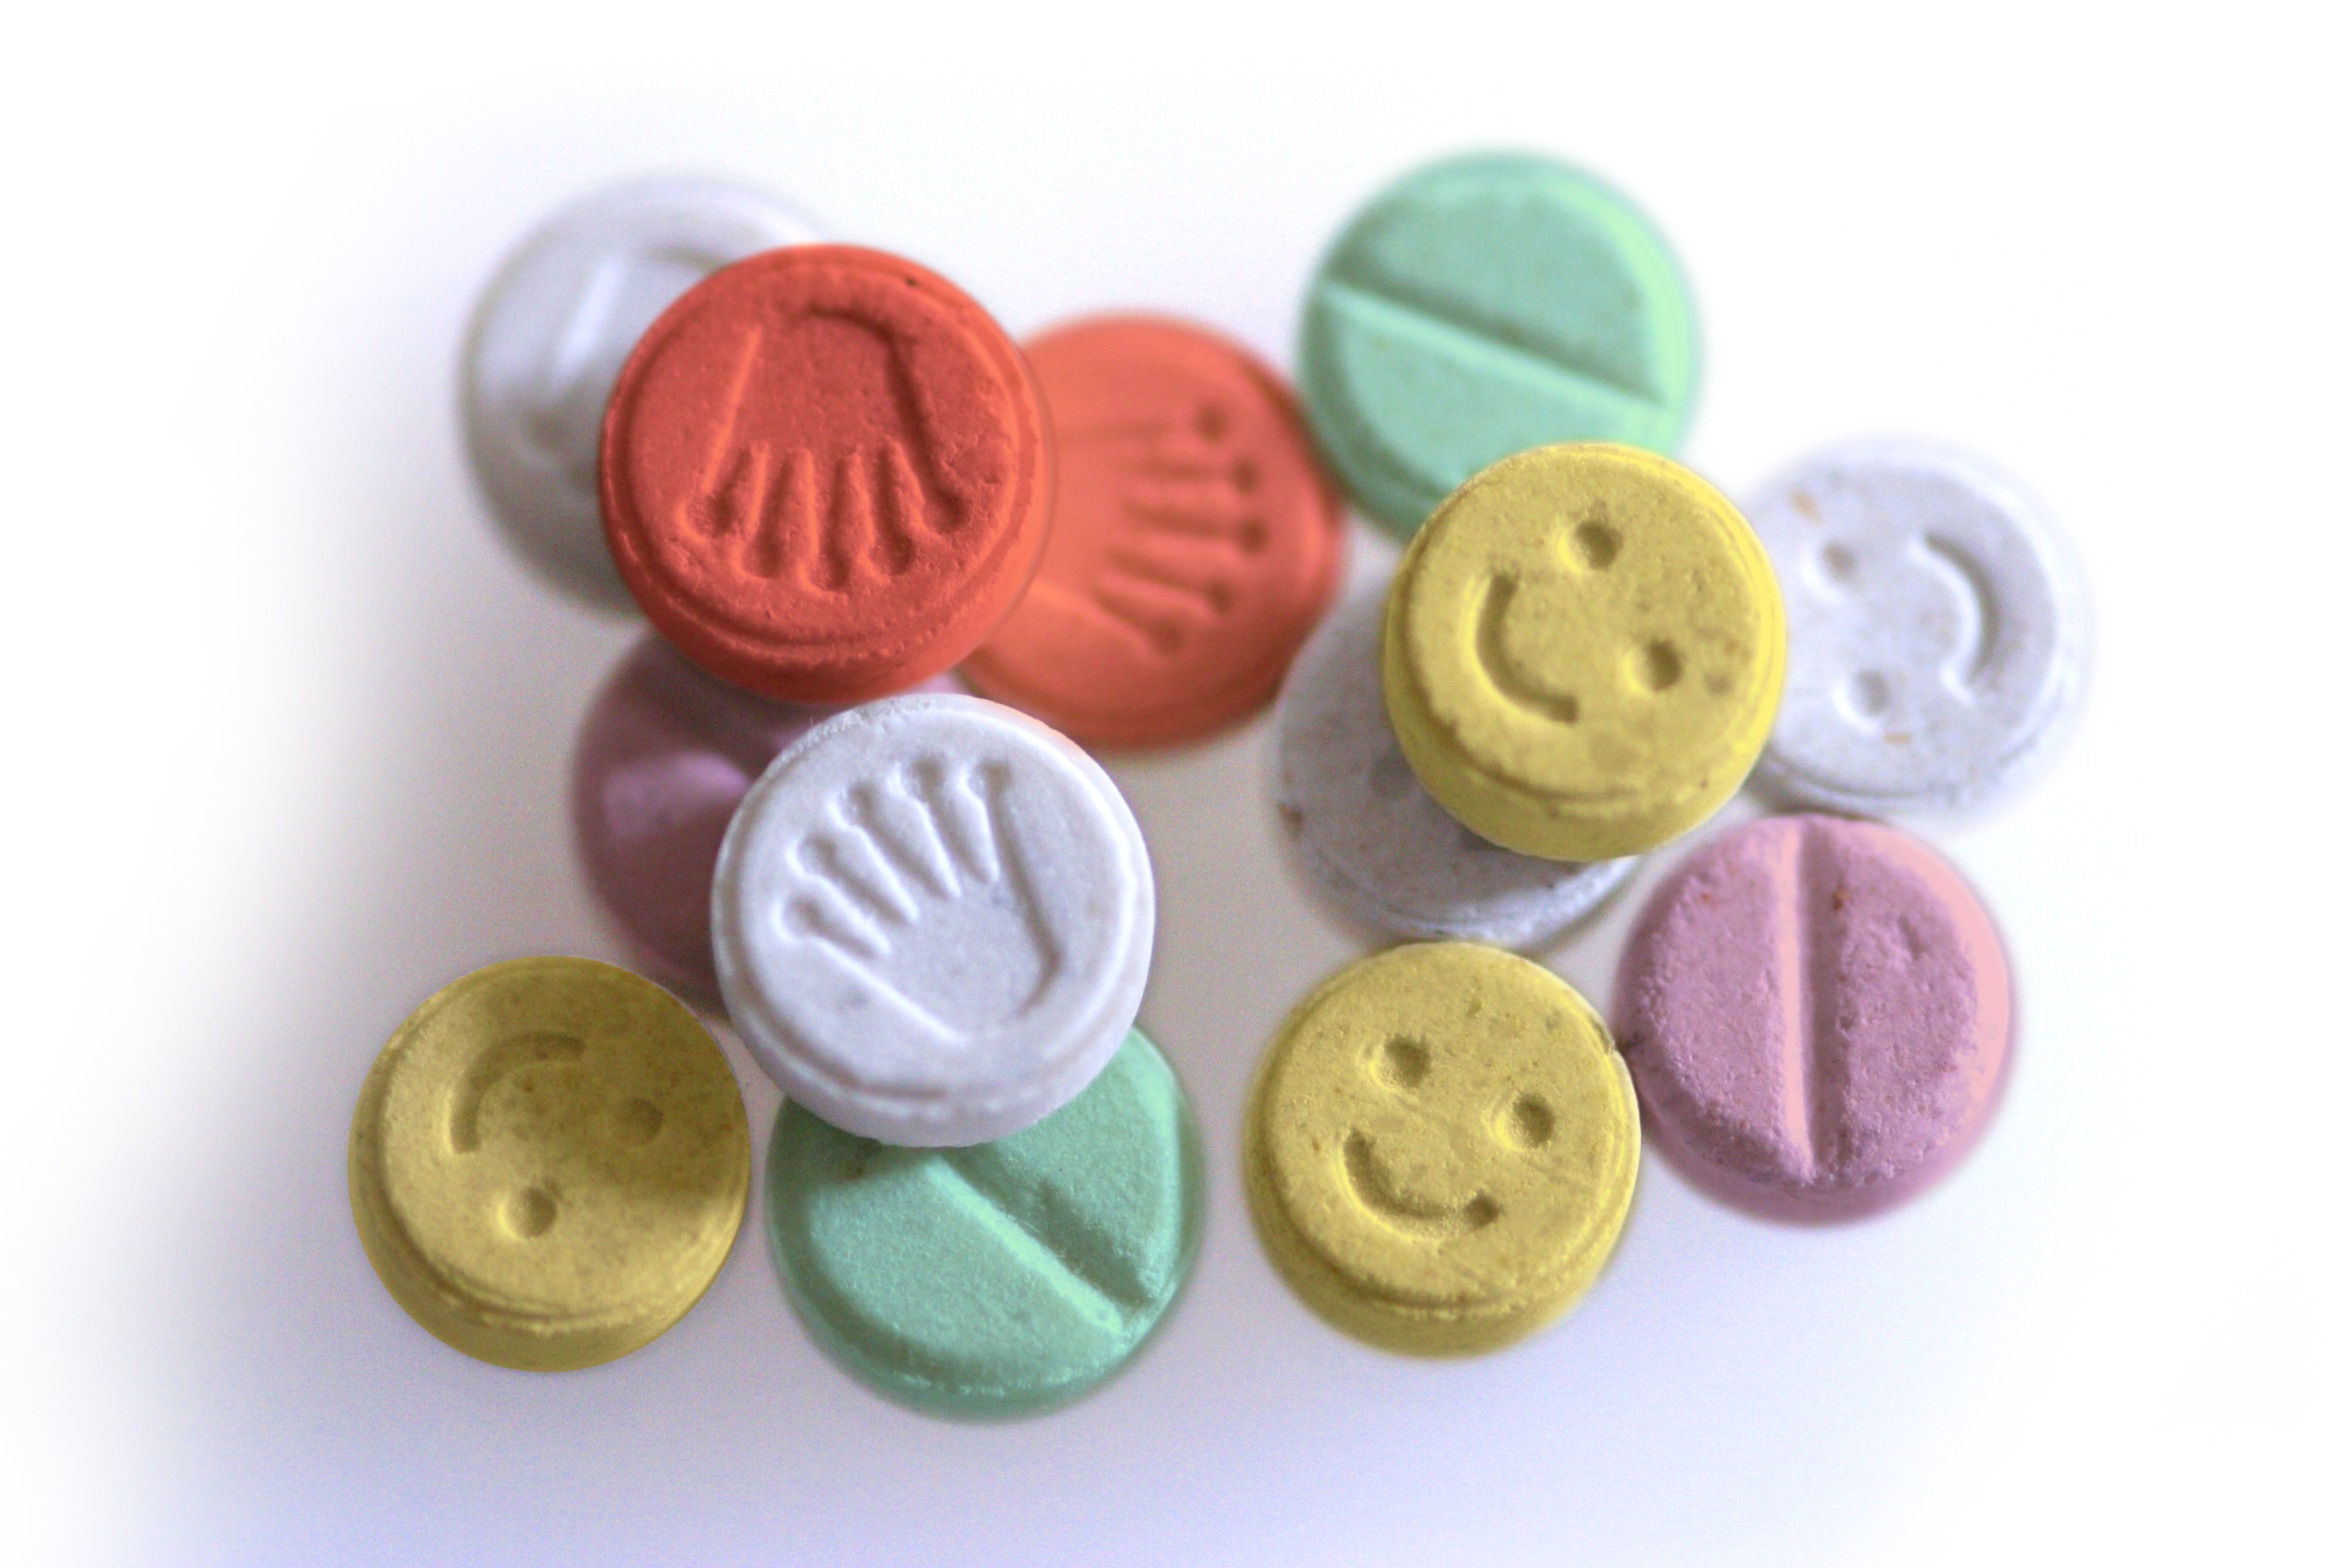 a study of mdma or ecstasy People who take the recreational drug ecstasy risk impairing their memory, according to an international study which surveyed 763 users.